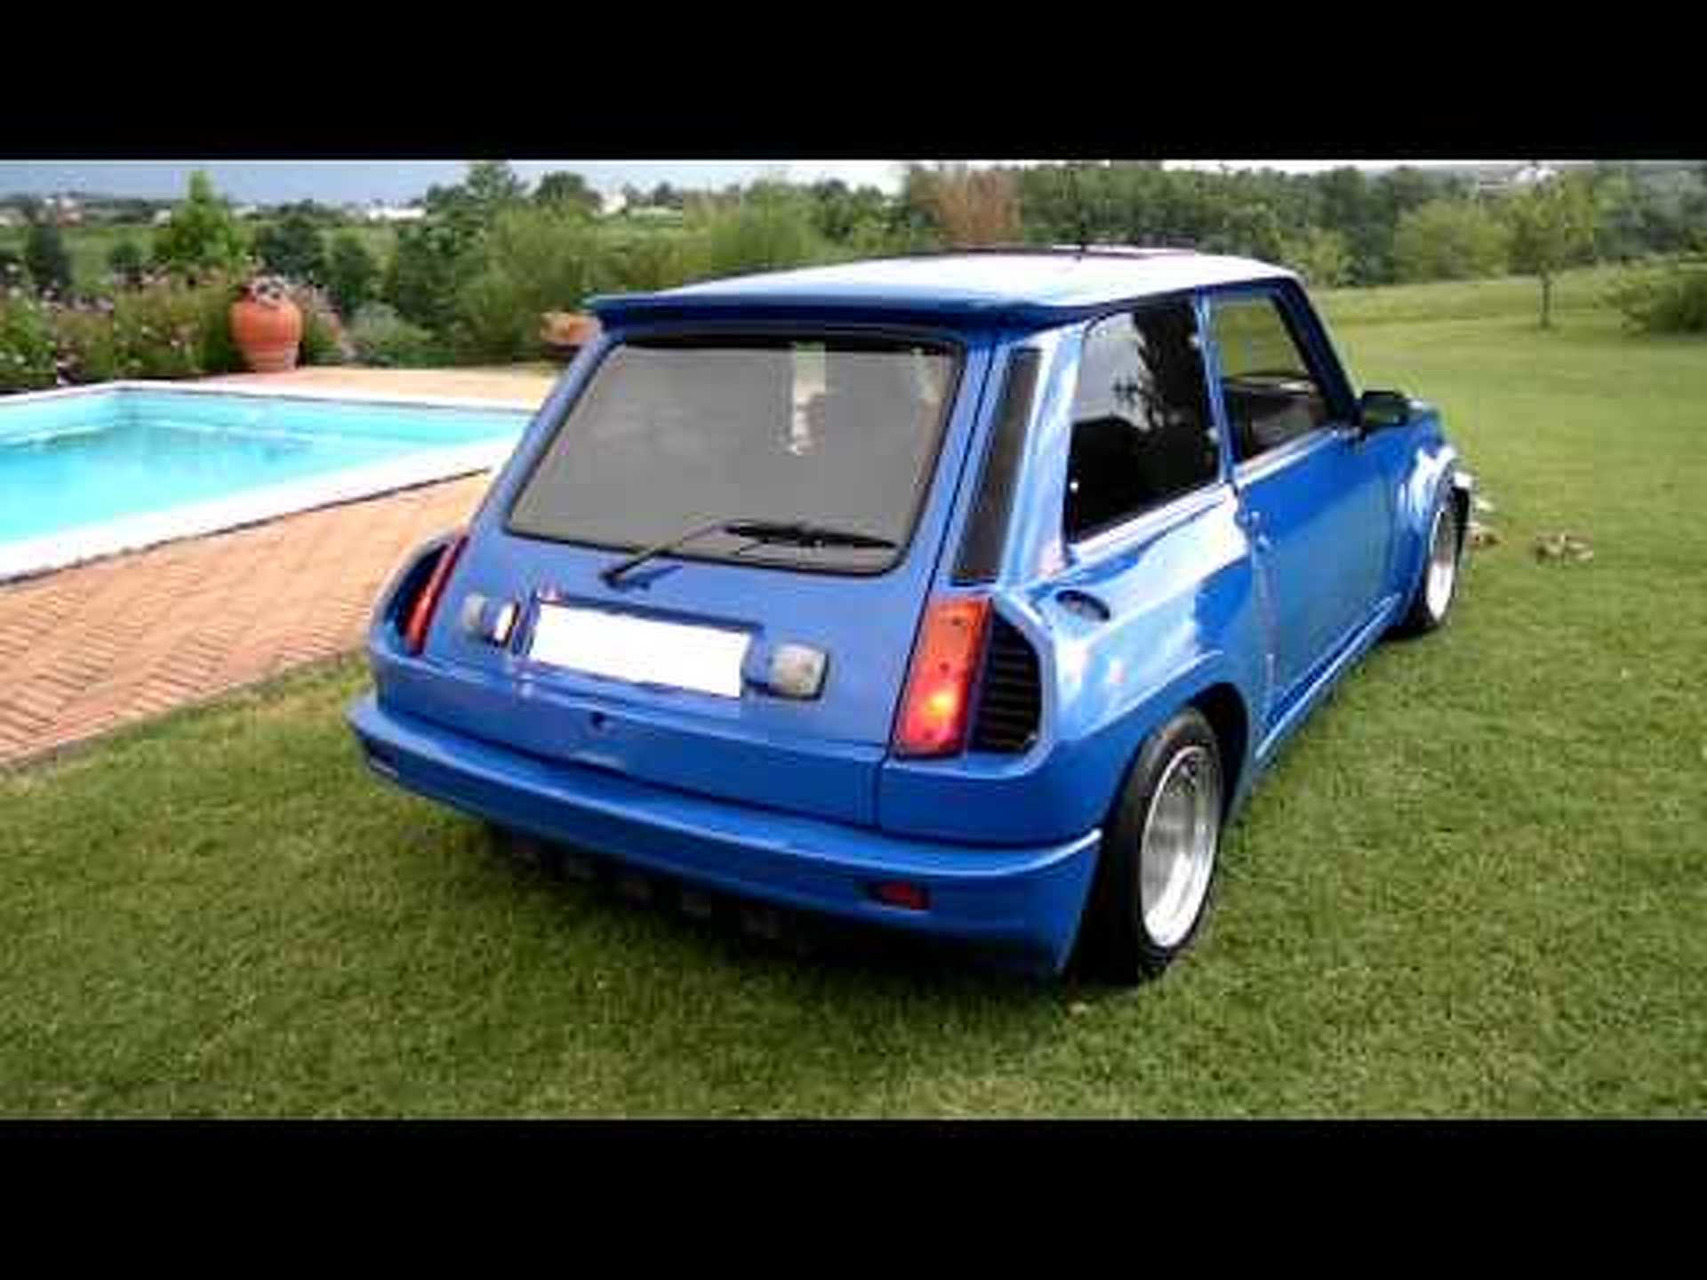 SAM_7225 KIT MAXI TURBO2 RENAULT 5 R5 ALPINE TURBO 1983 ESTERNO INTERNO.mov